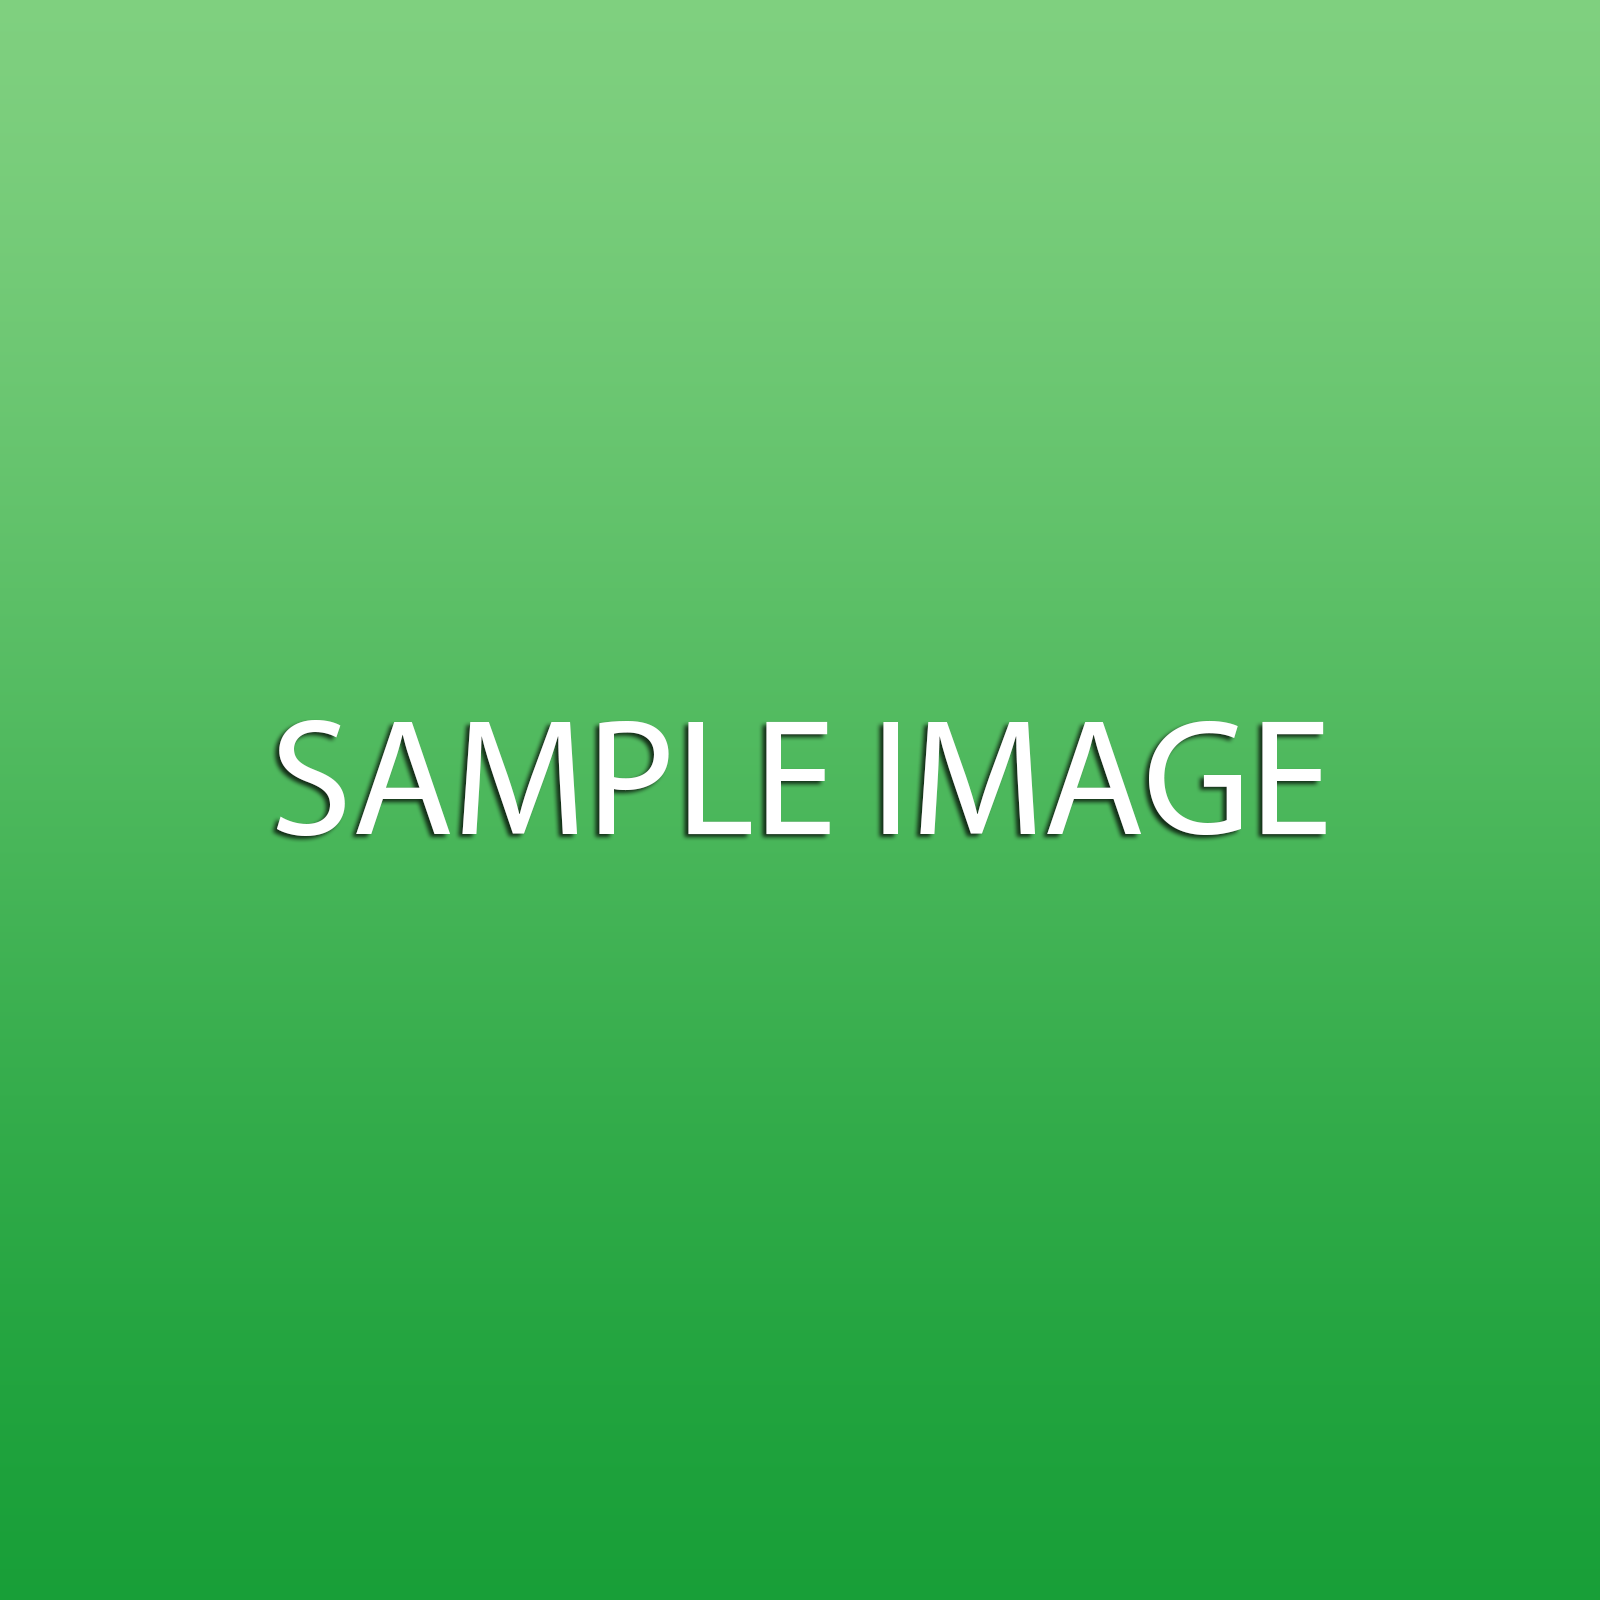 Sample Image Green